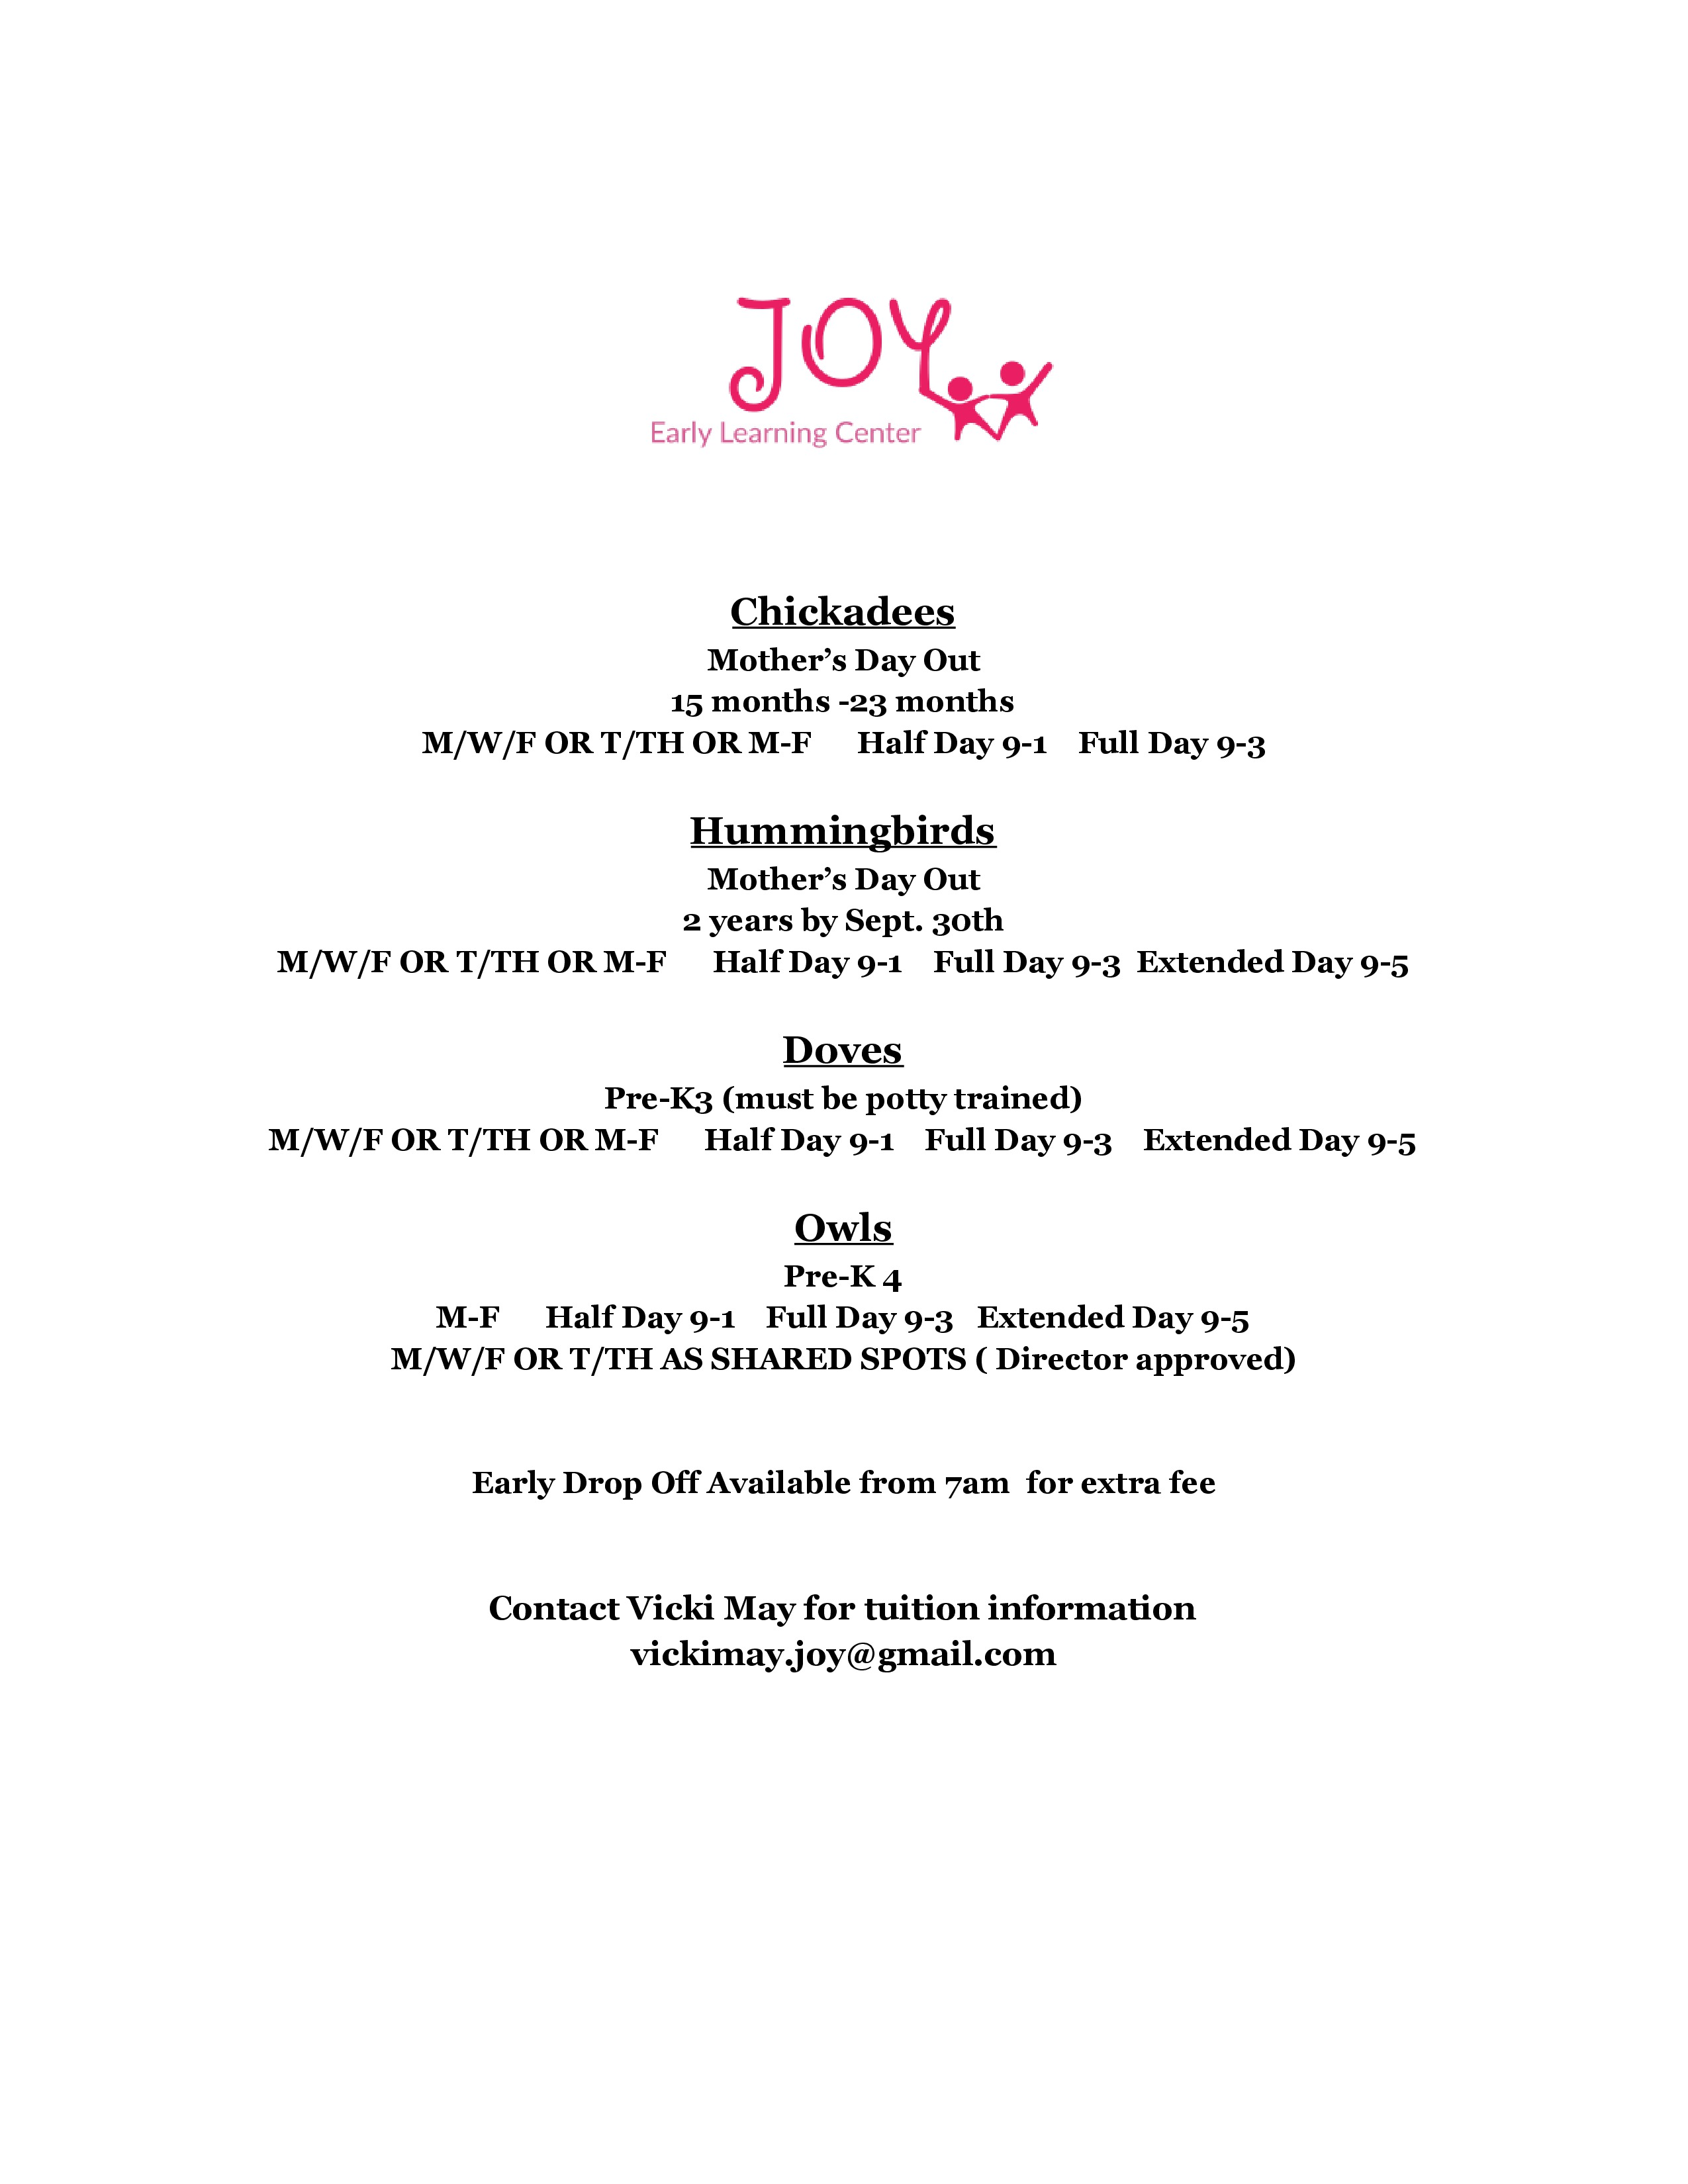 JOY Early Learning Center program options